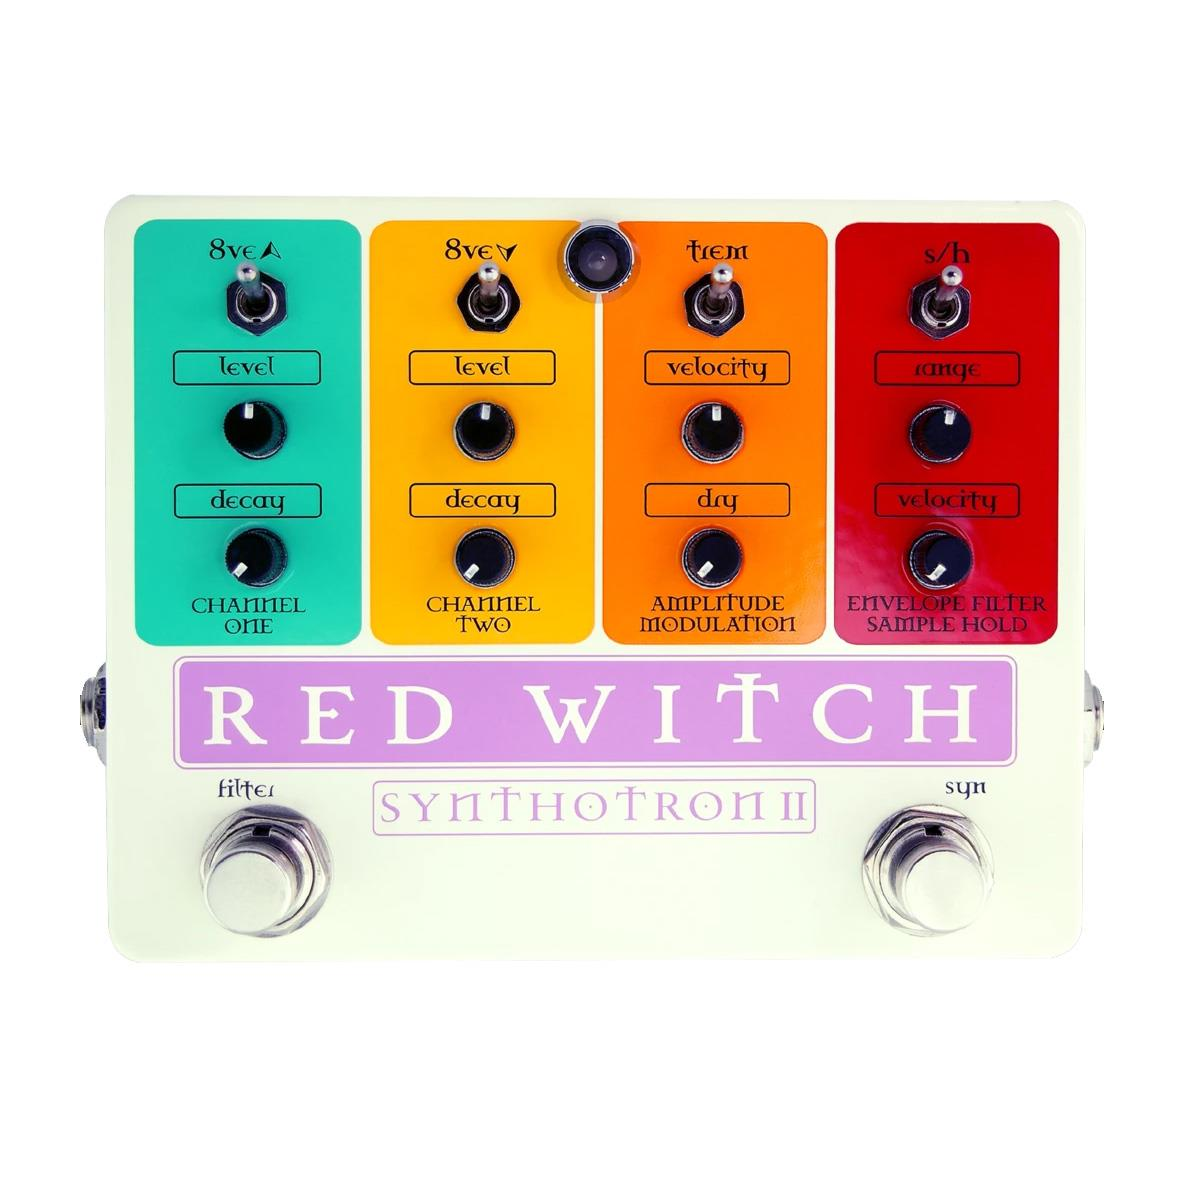 Red Witch Synthotron II Analog Synth pedal